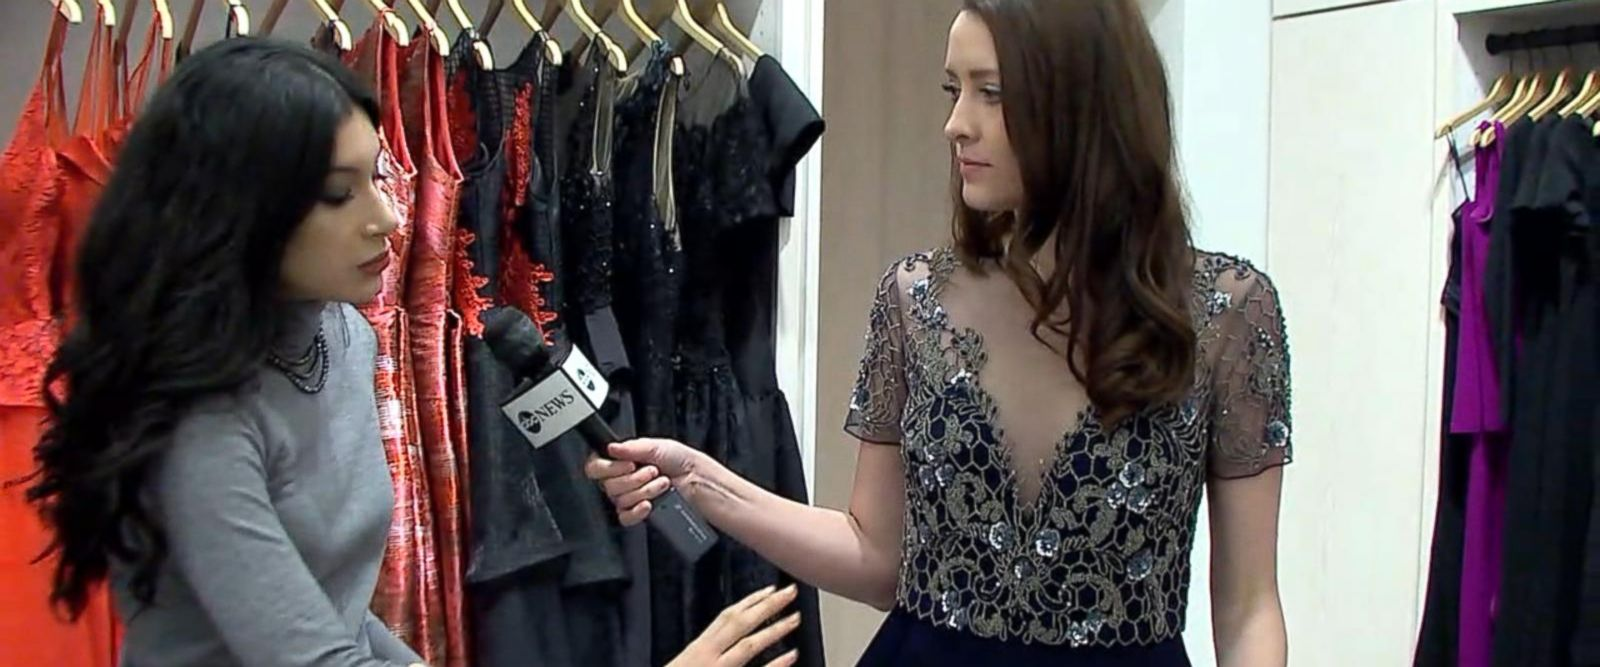 VIDEO: Getting the perfect look for Oscar Sunday's Red Carpet at Rent The Runway